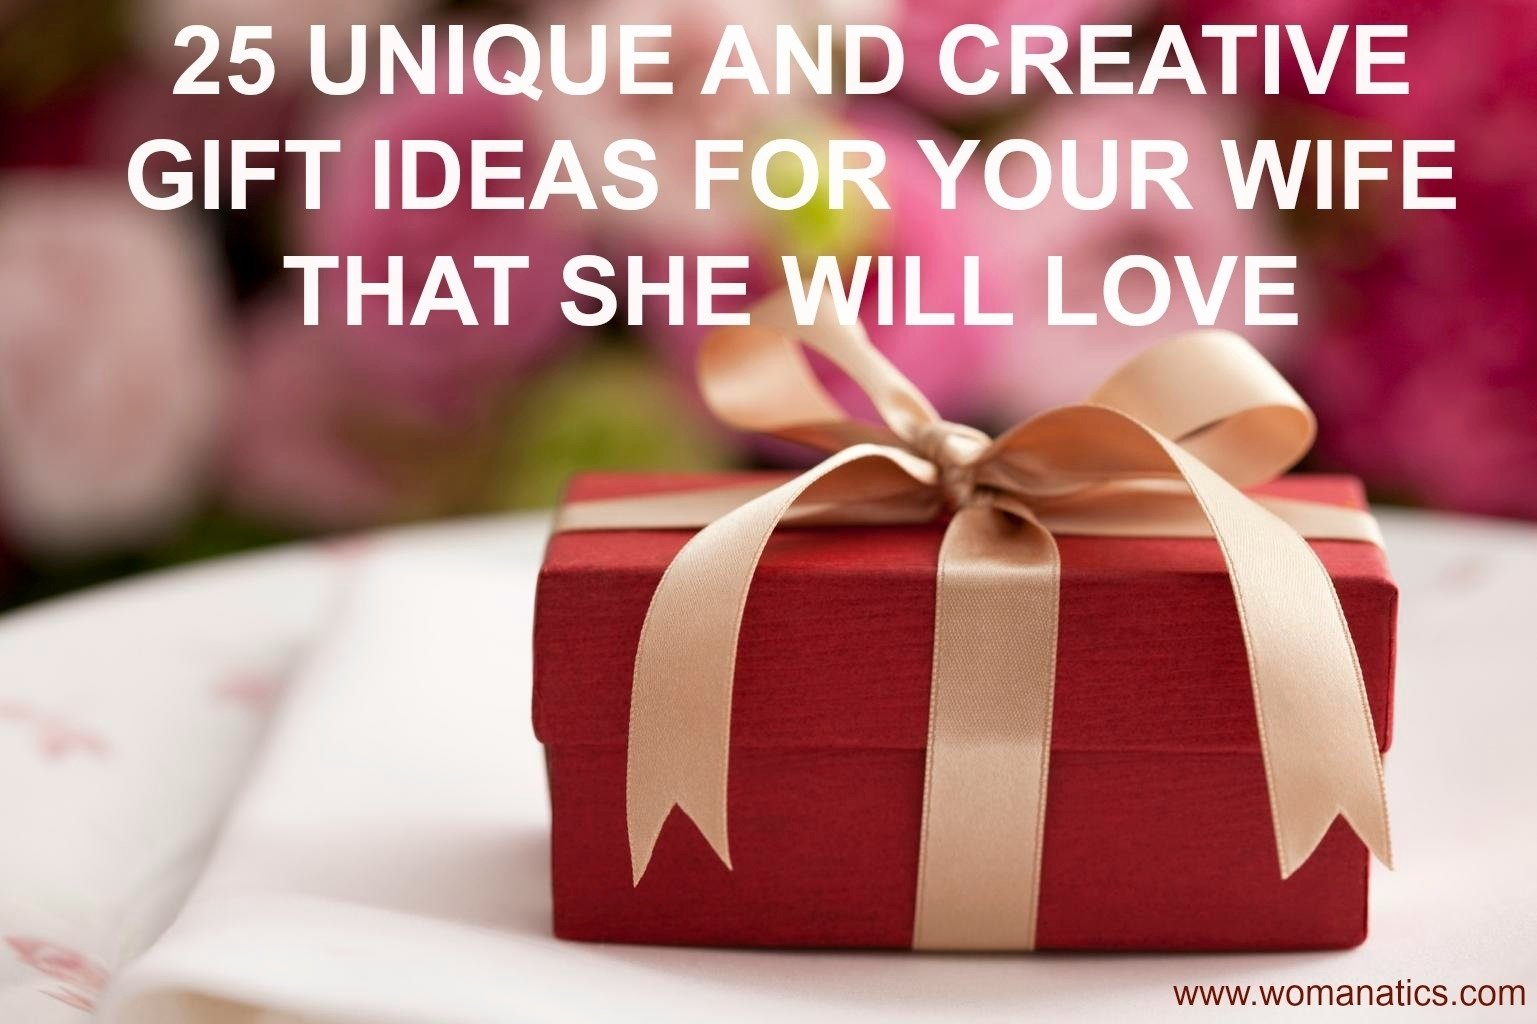 10 Gorgeous Xmas Gift Ideas For Wife 25 unique and creative gift ideas for your wife that she will love 18 2021